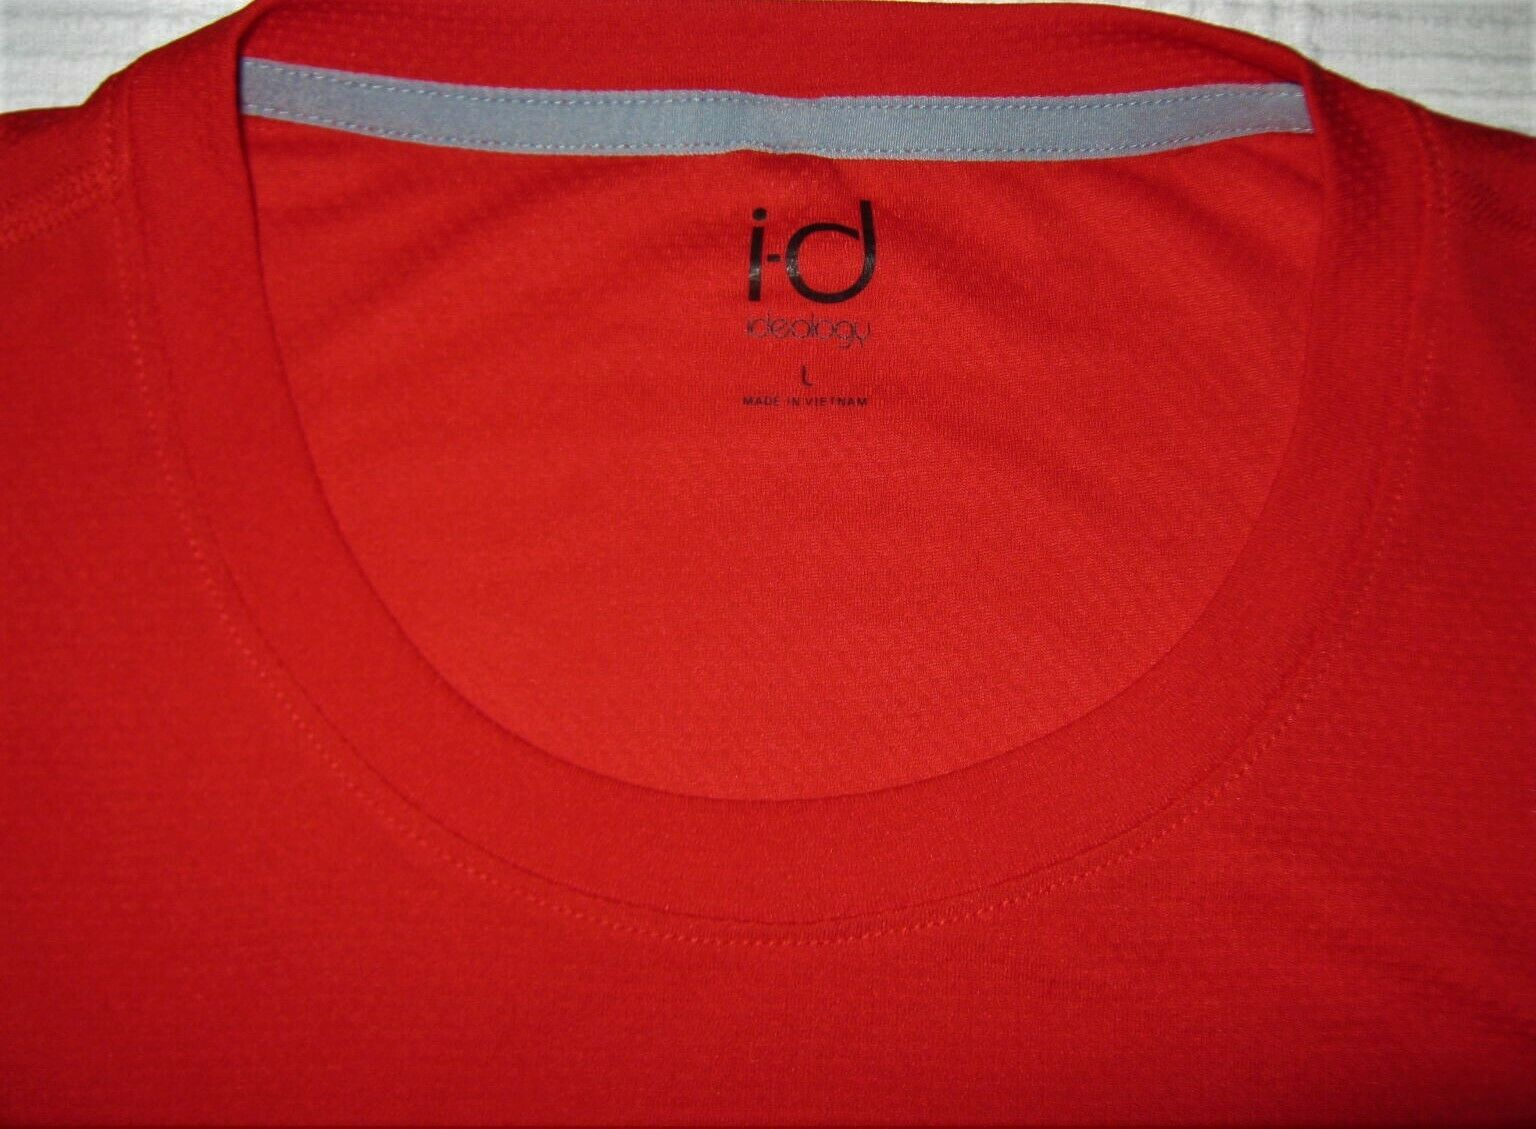 Ideology Red Mens Athletic Apparel Performance T-shirt Usa Size Large L